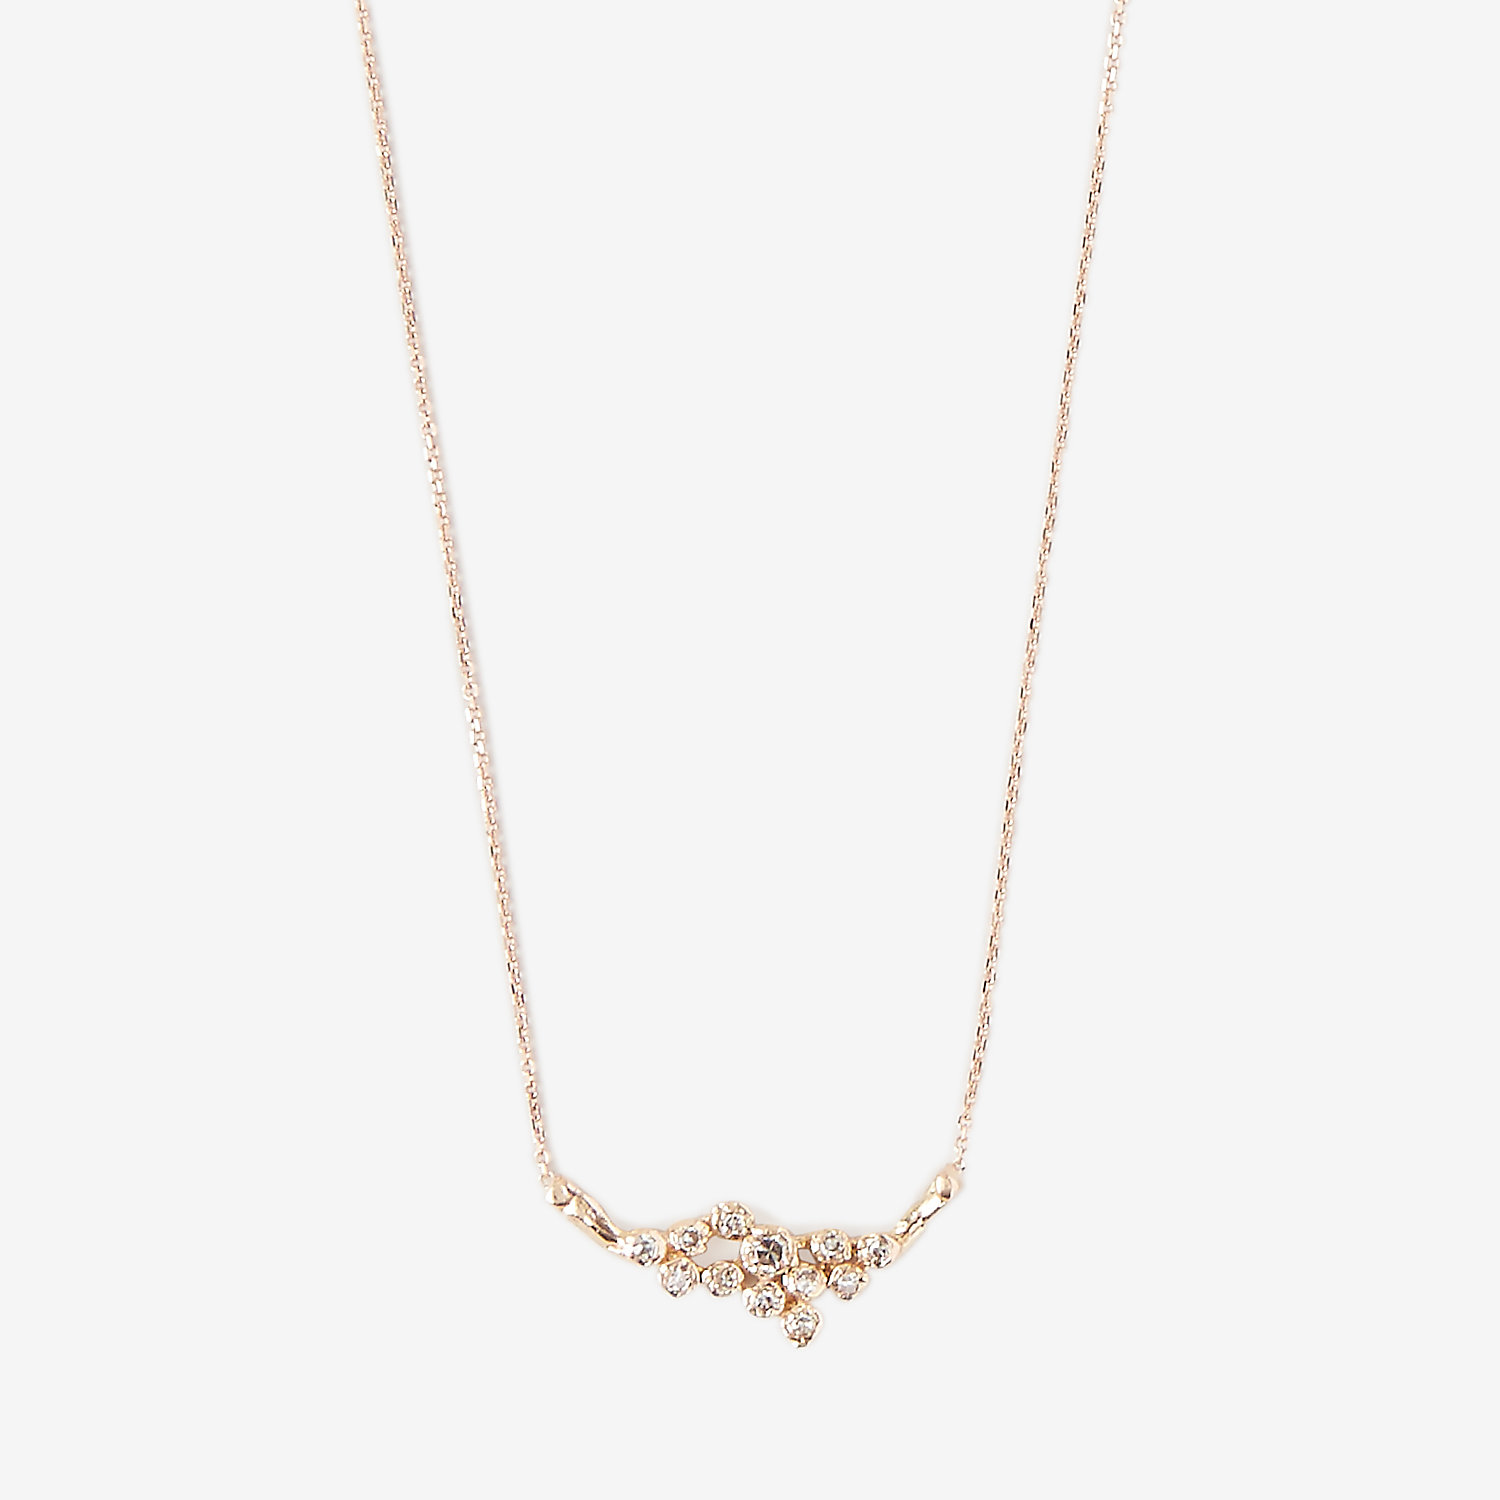 12 DIAMOND CLUSTER NECKLACE